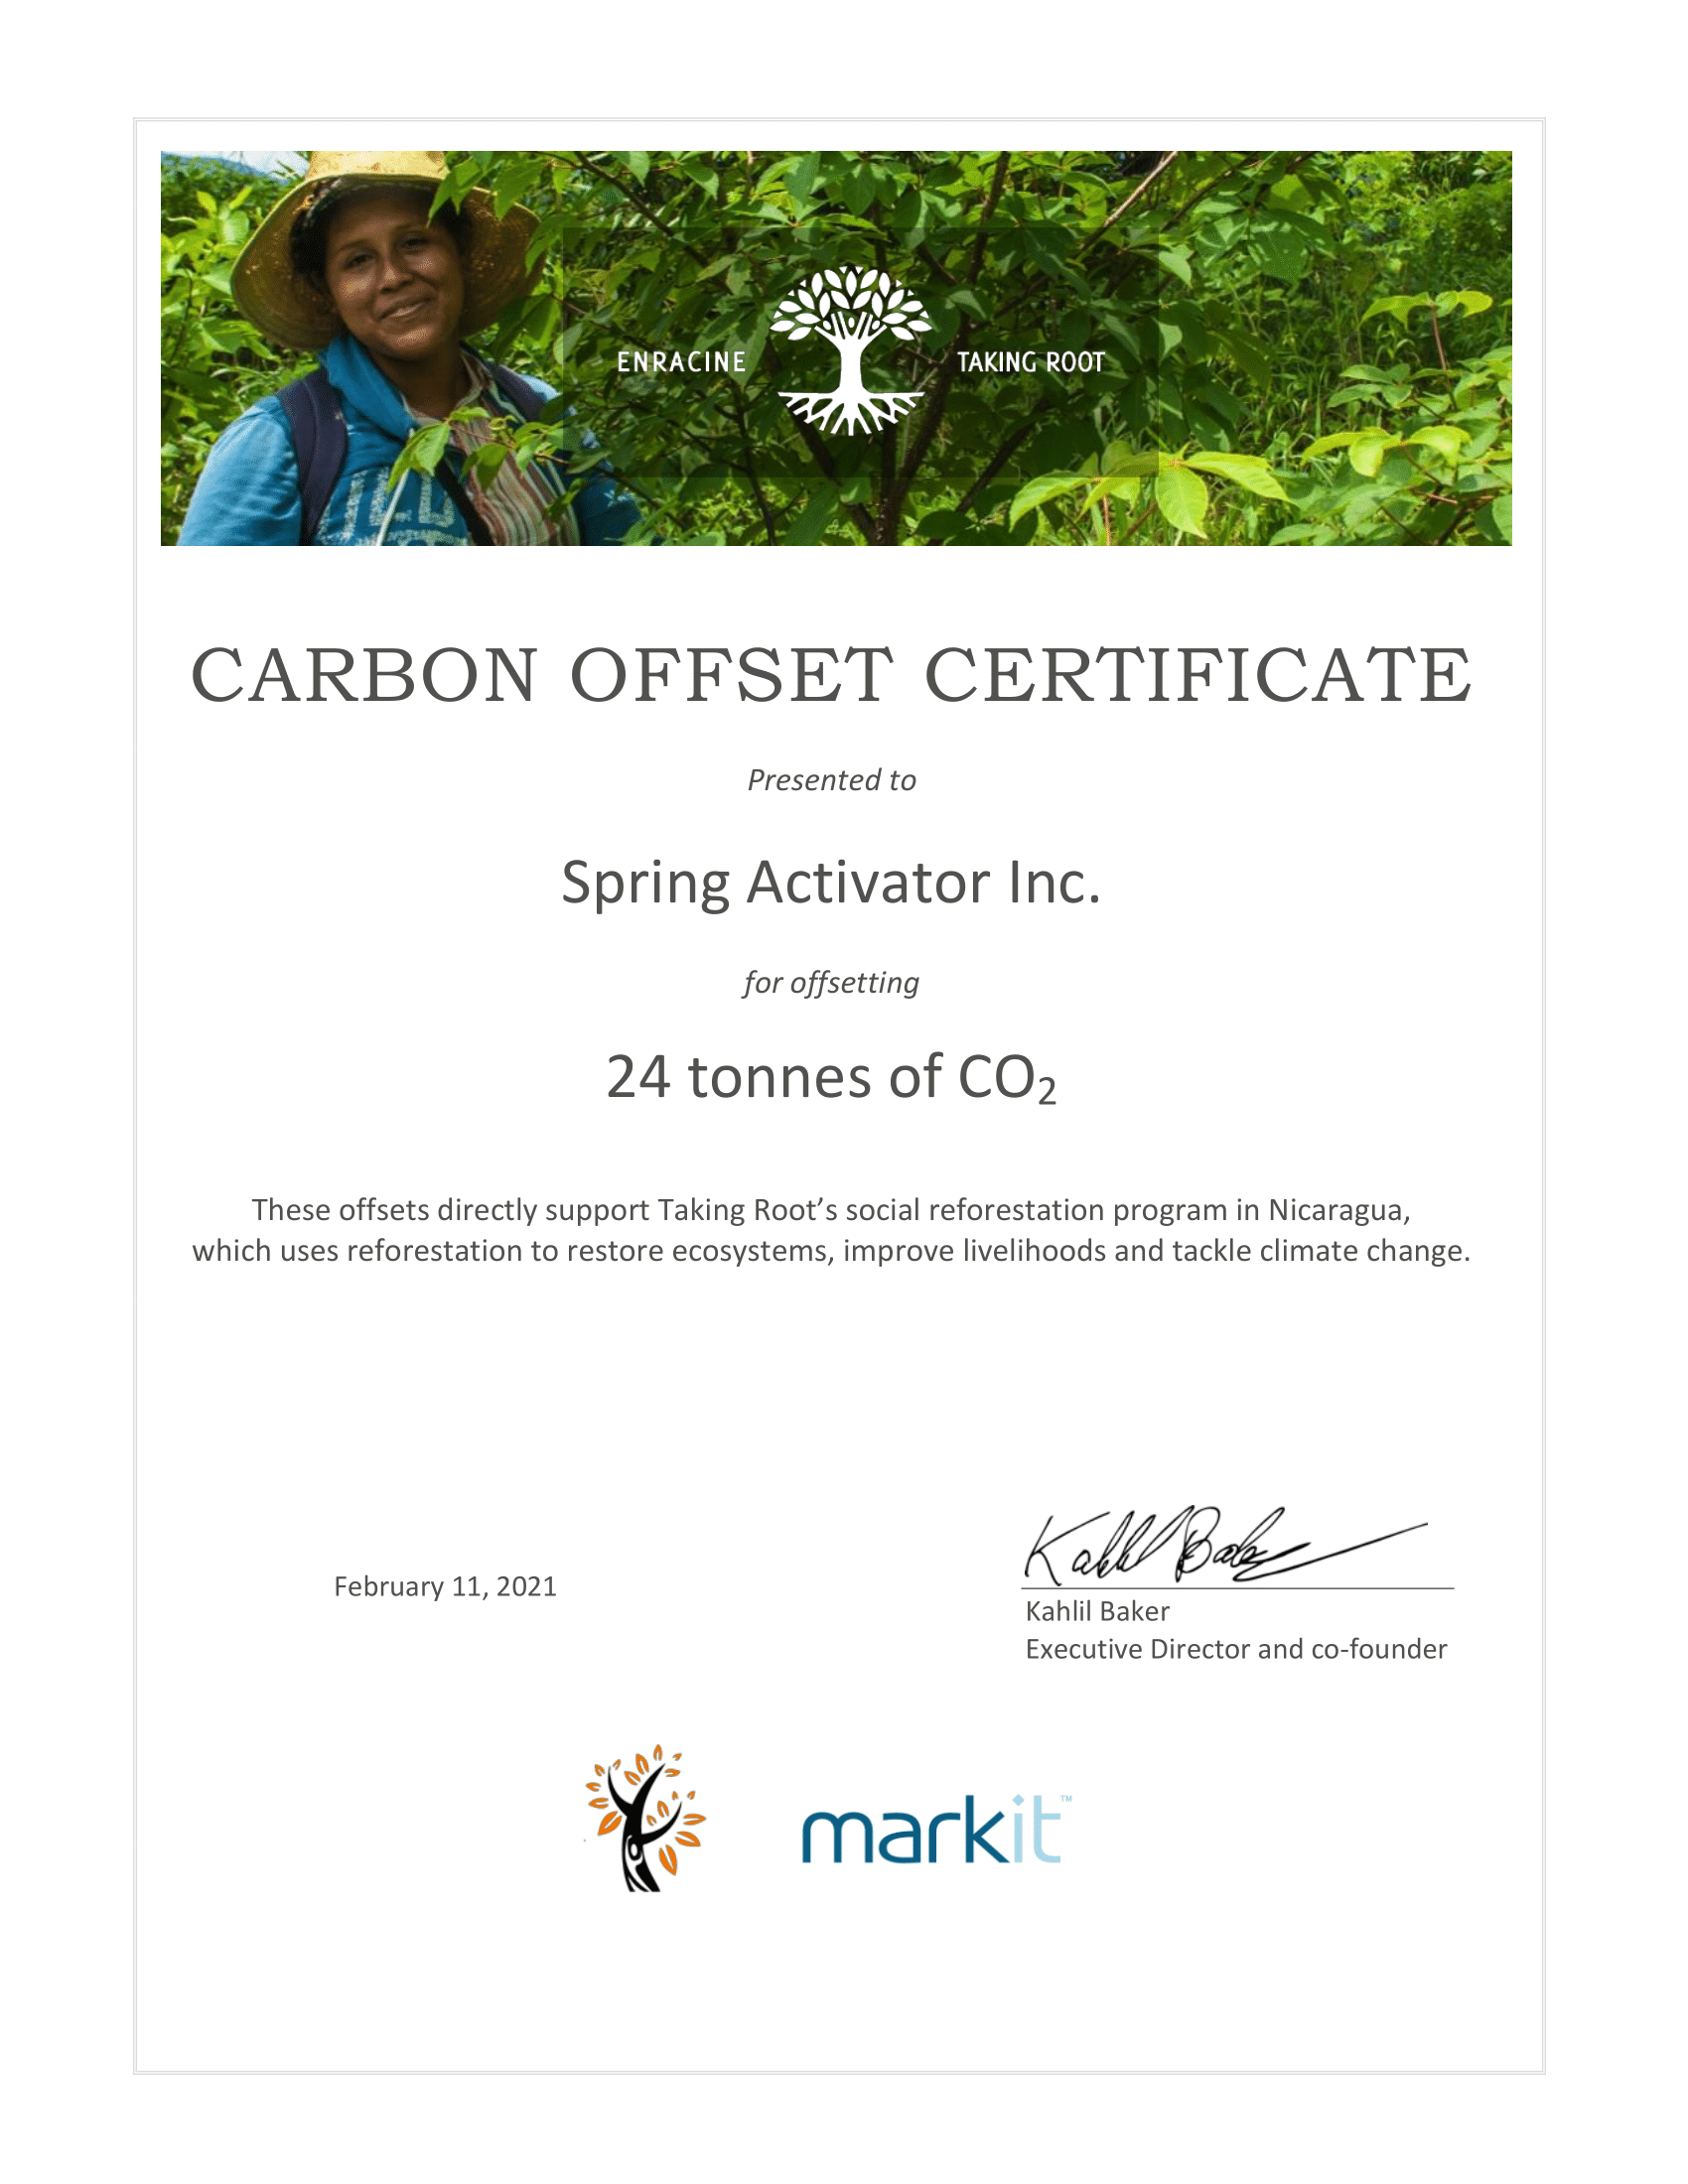 Spring Activator is Certified Carbon Neutral by Taking Root